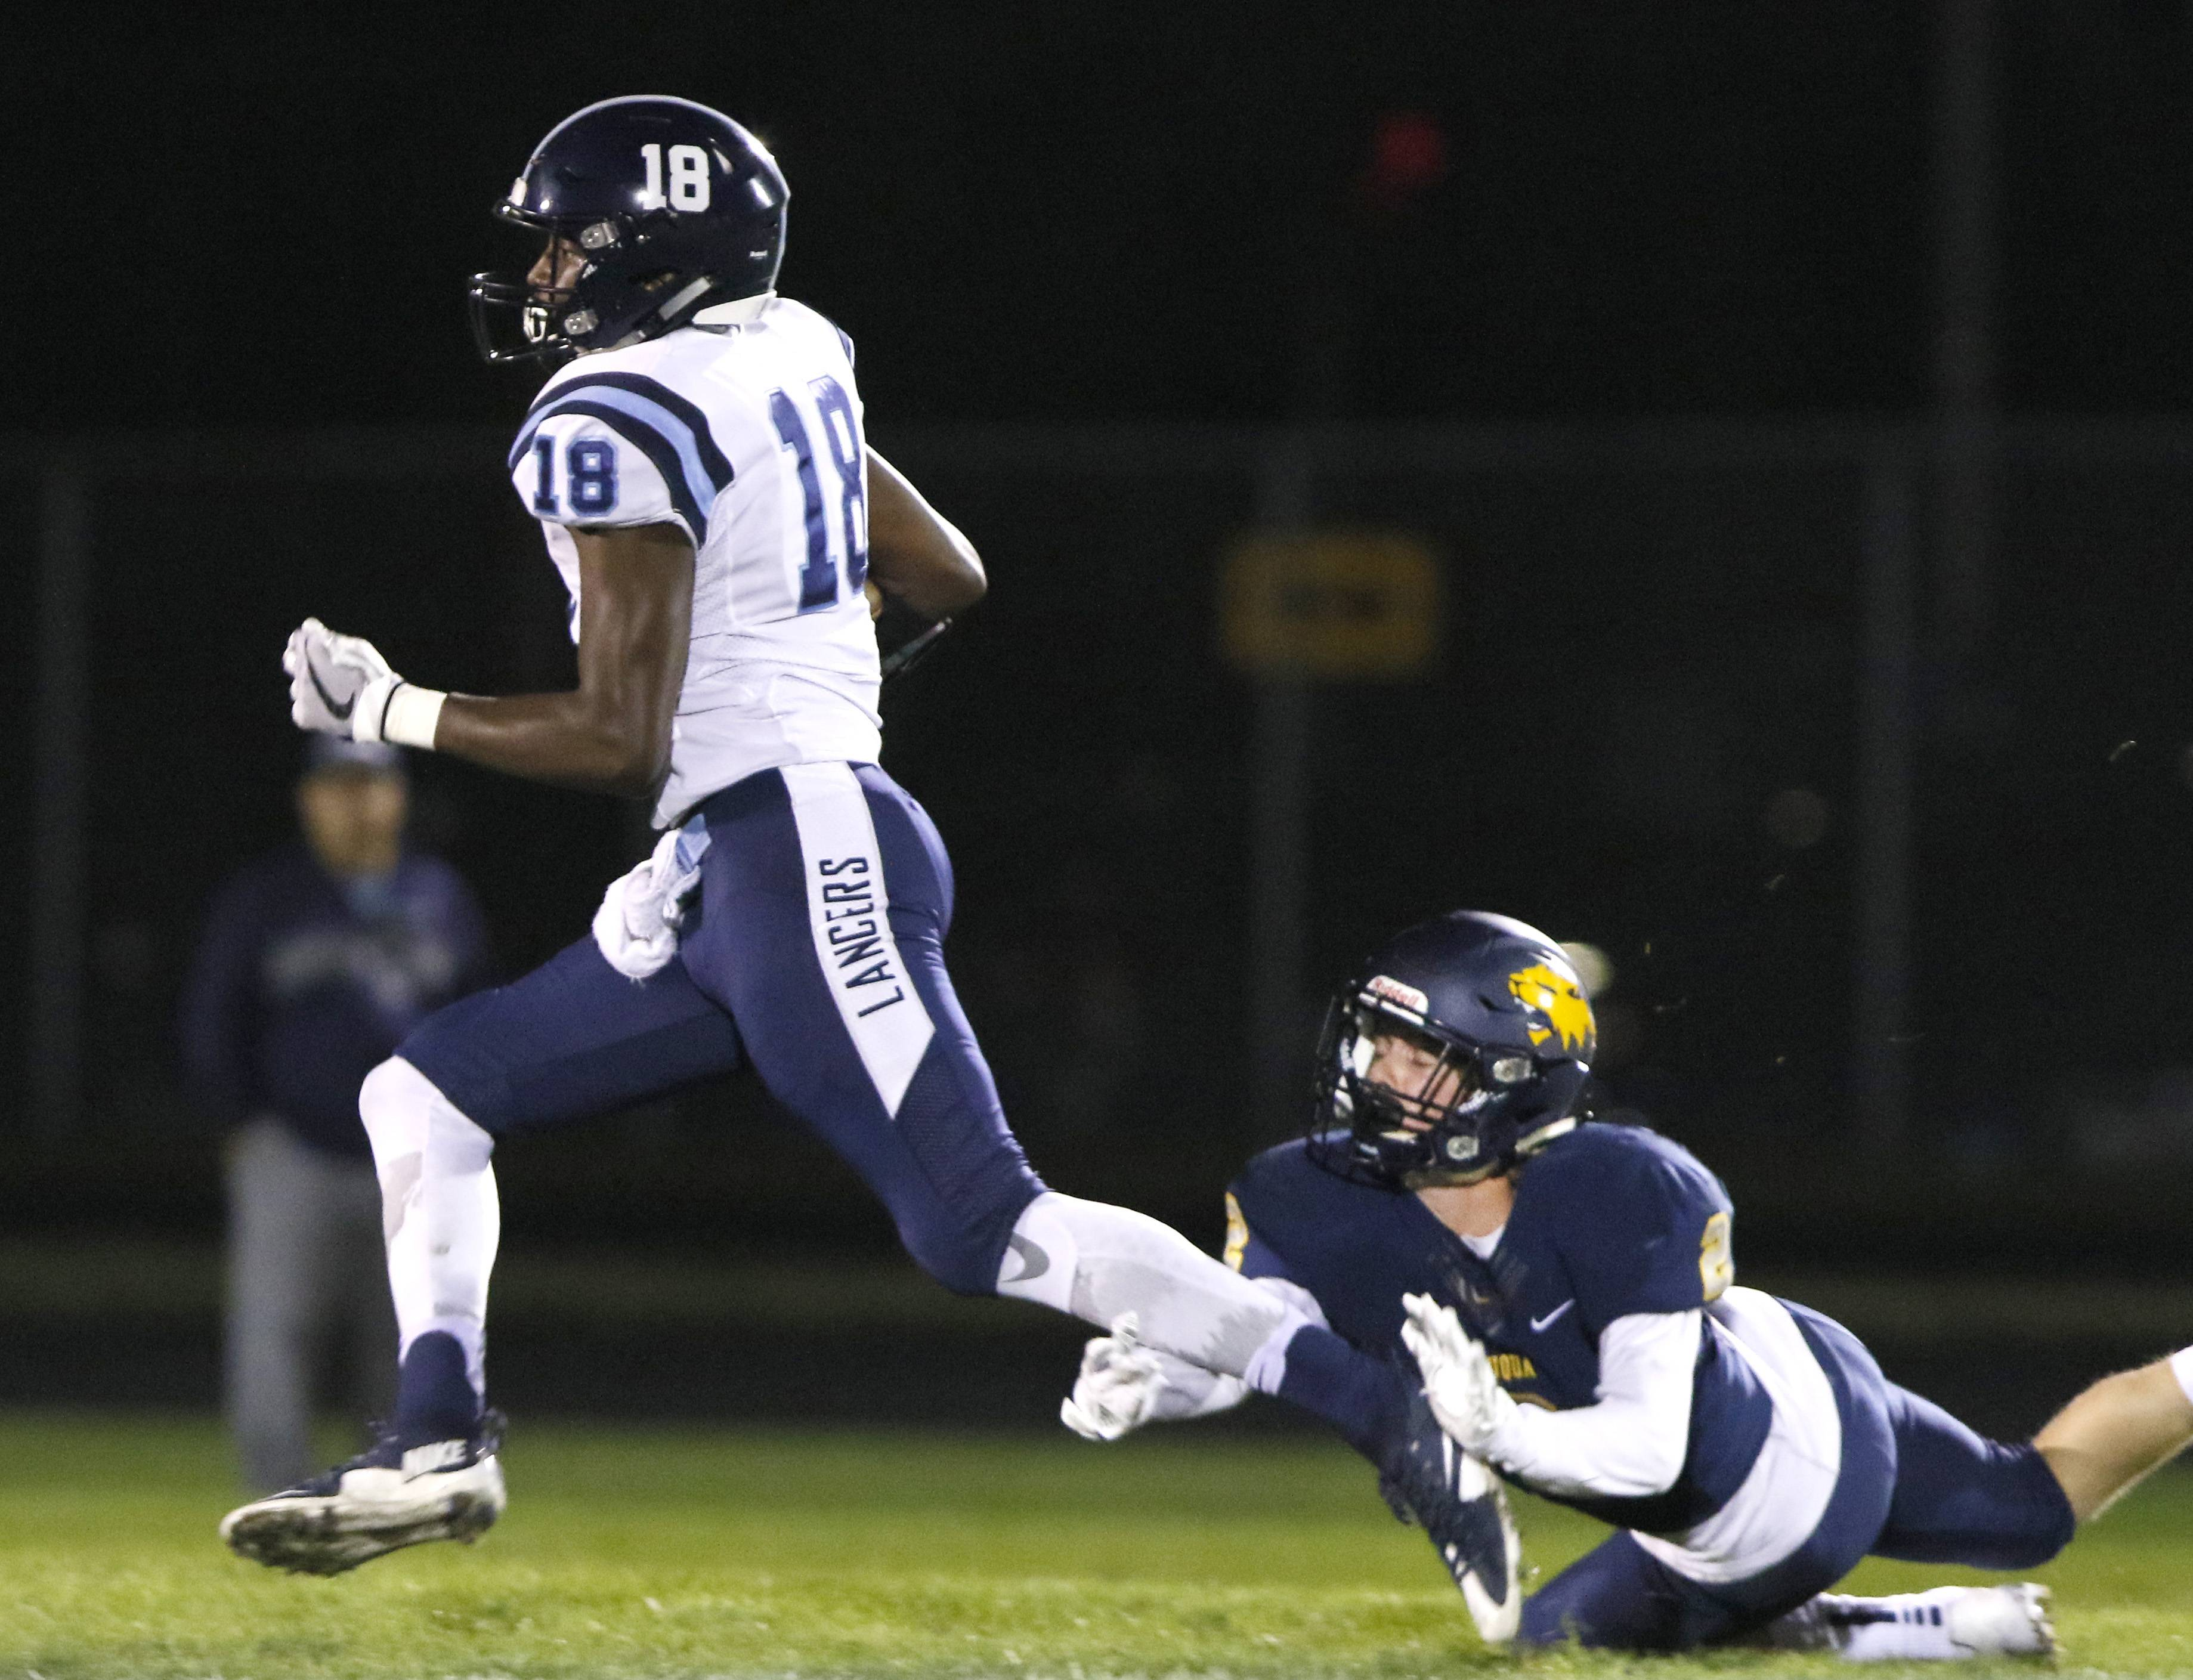 Lake Park's Keonta Nixon (18) runs for a touchdown after his catch against Neuqua Valley during Friday night football action in Naperville. Neuqua Valley's Ryan Wheeler makes a diving effort on the play.